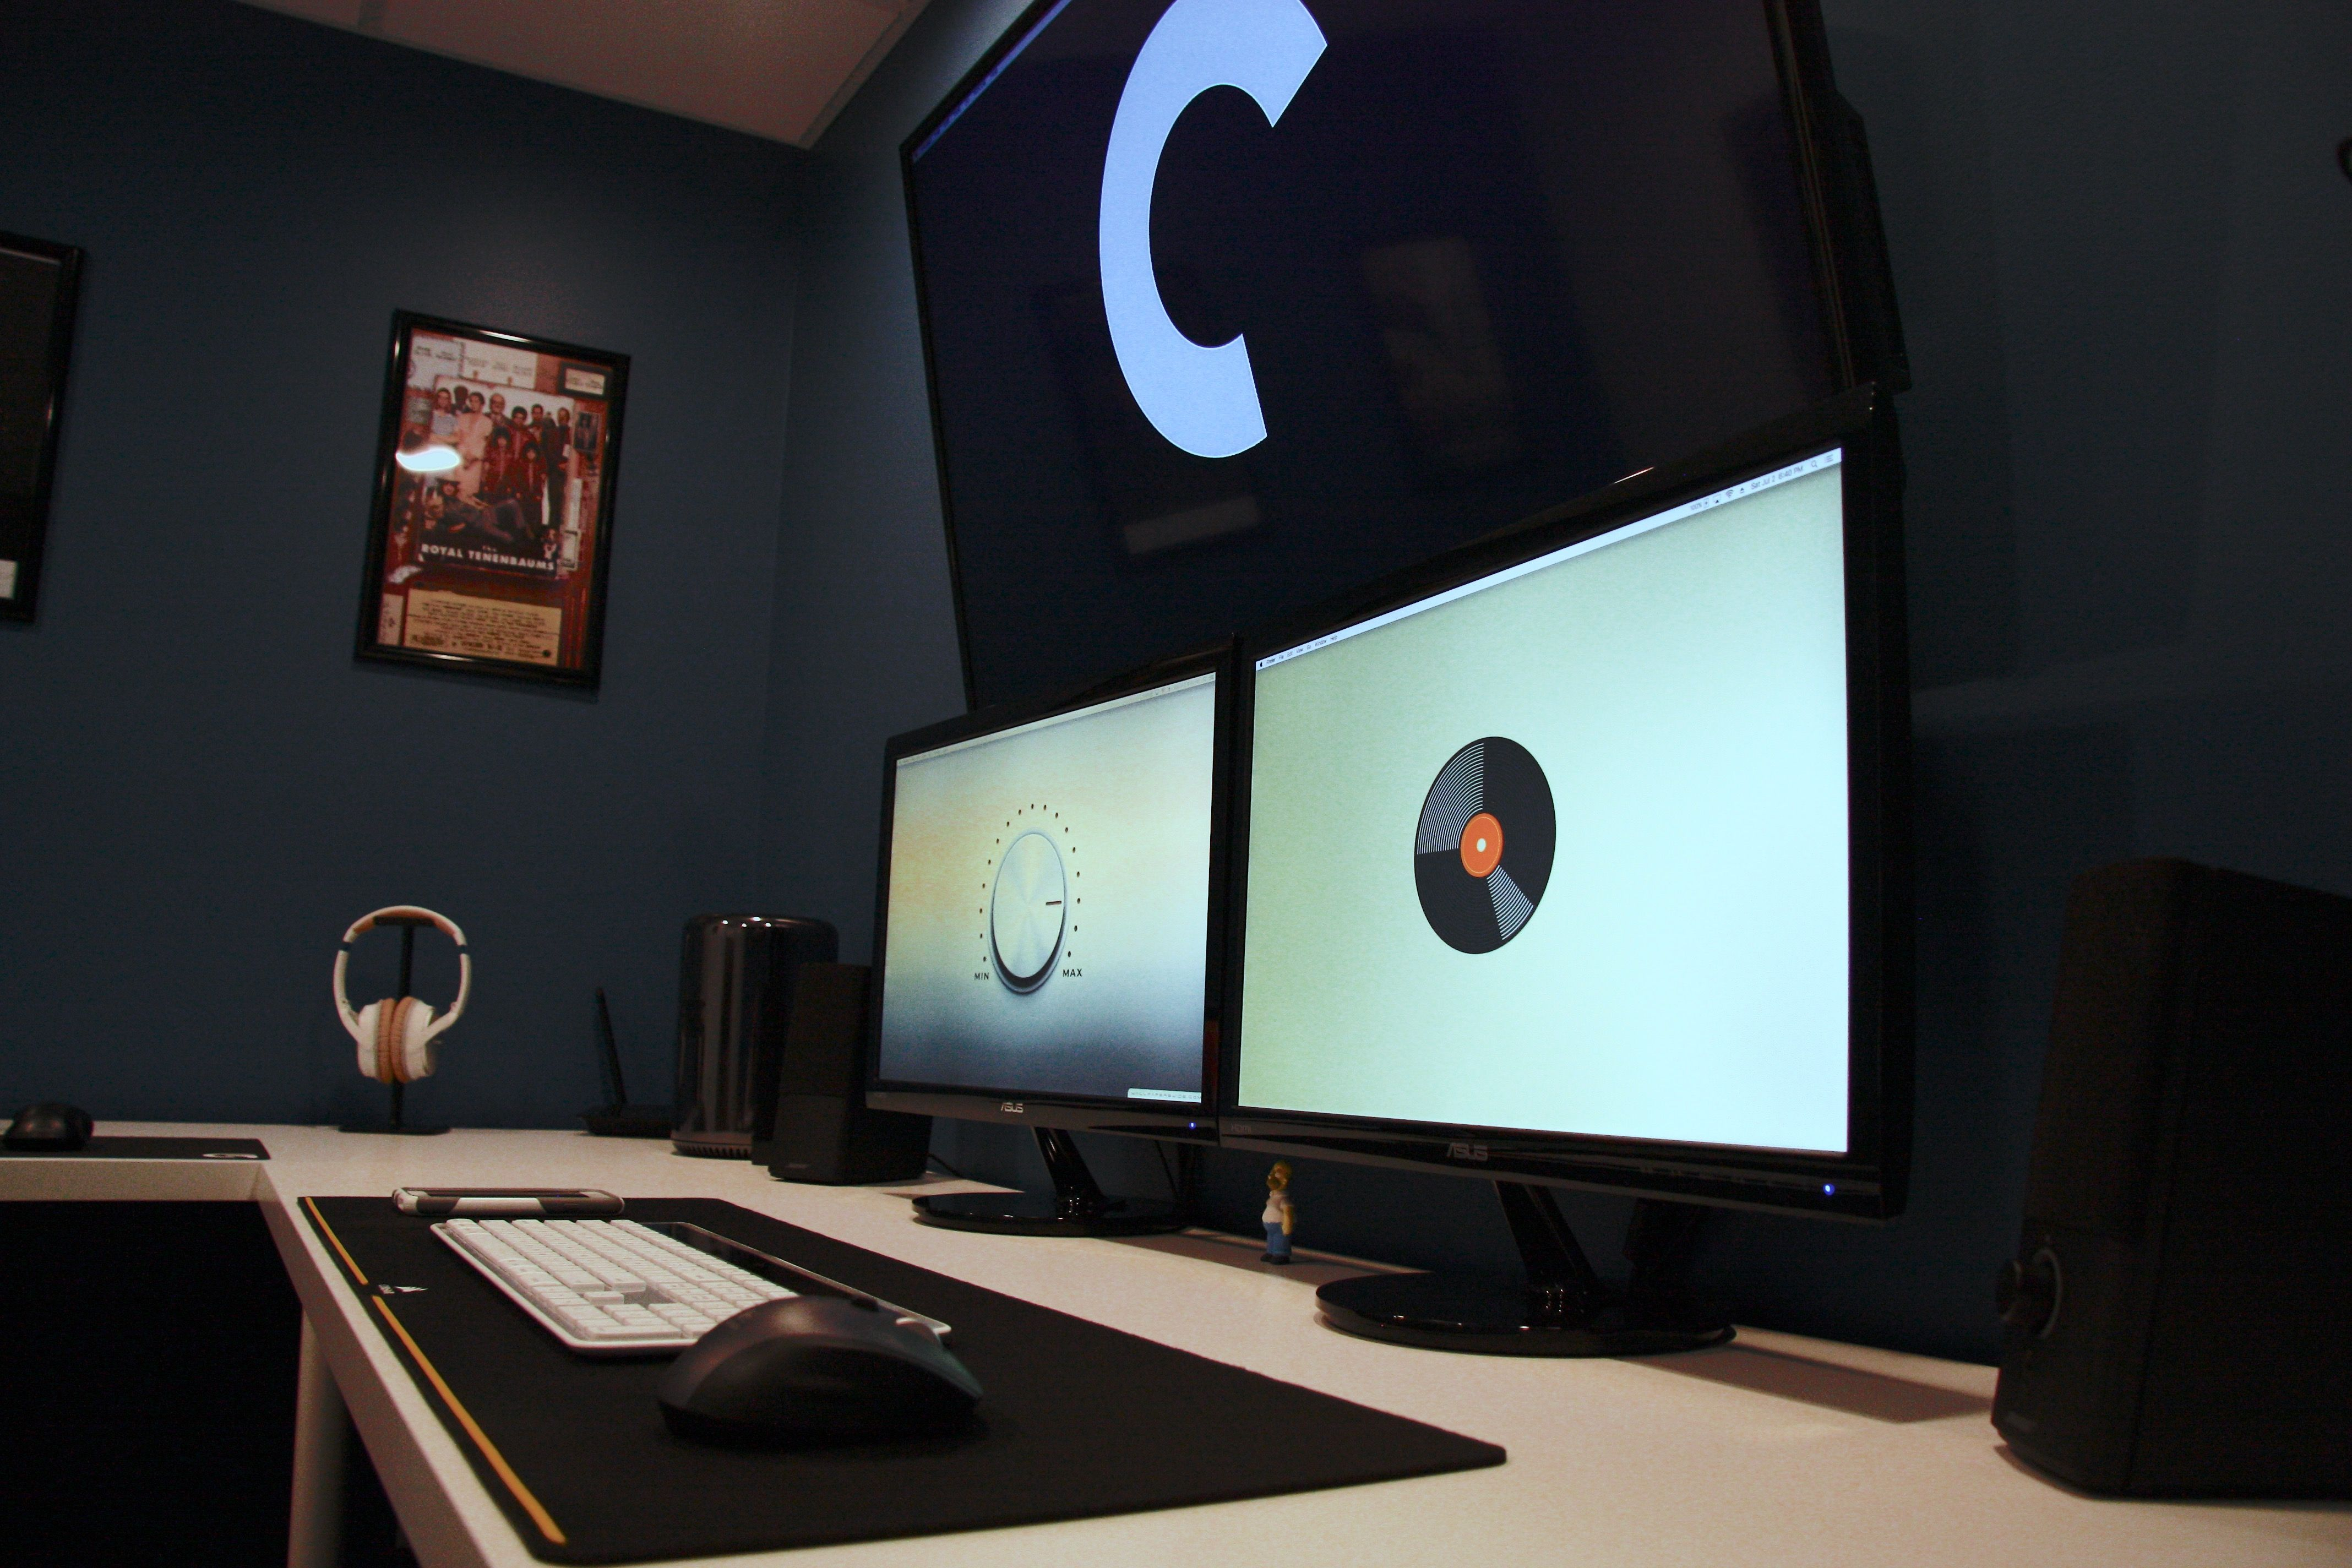 my setup in my home office #1